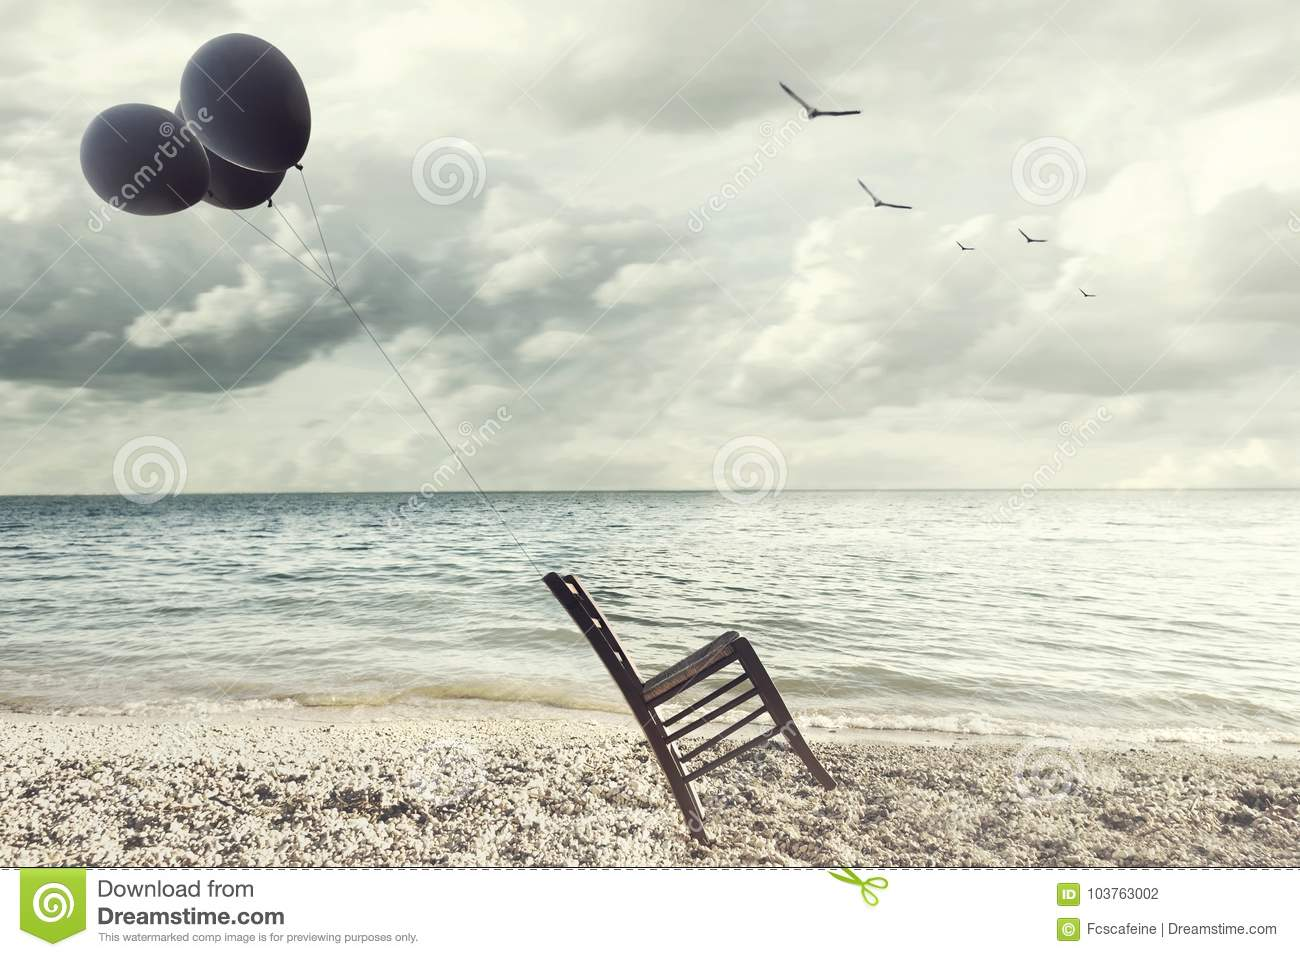 Superb Surreal Image Of A Chair Held In Balance By Flying Balloons Squirreltailoven Fun Painted Chair Ideas Images Squirreltailovenorg